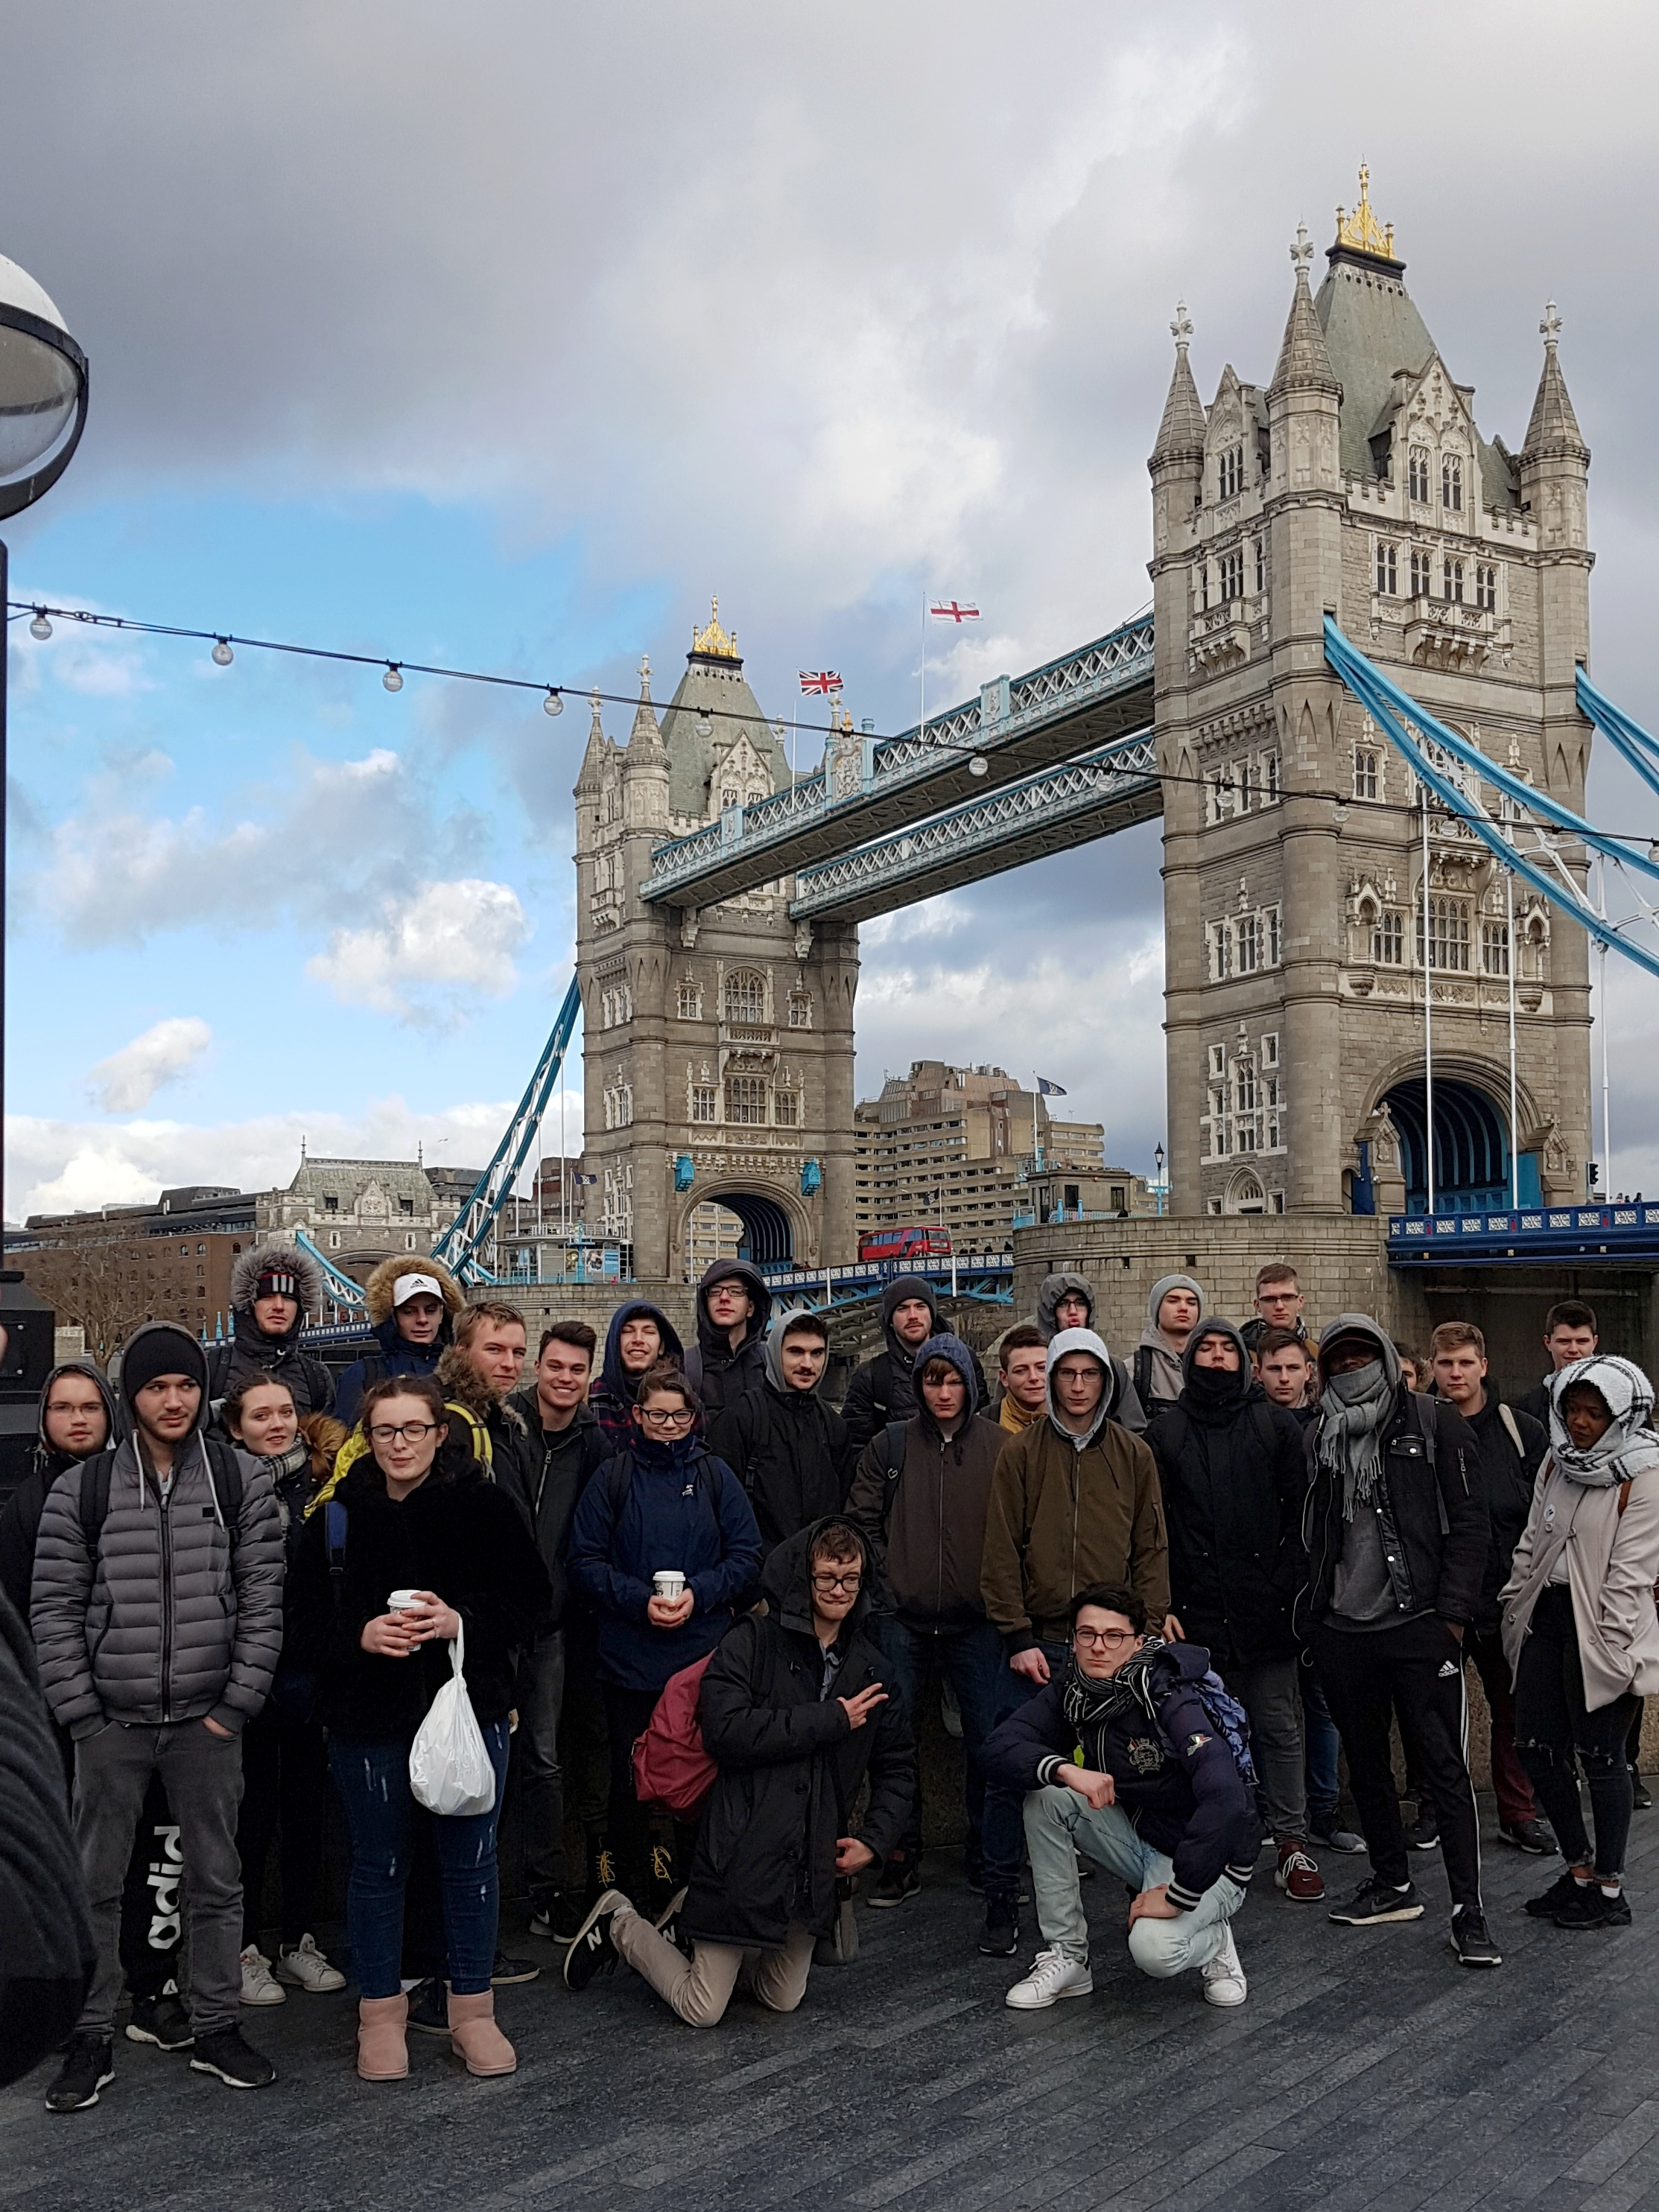 Les Terminales Pro devant le Tower Bridge